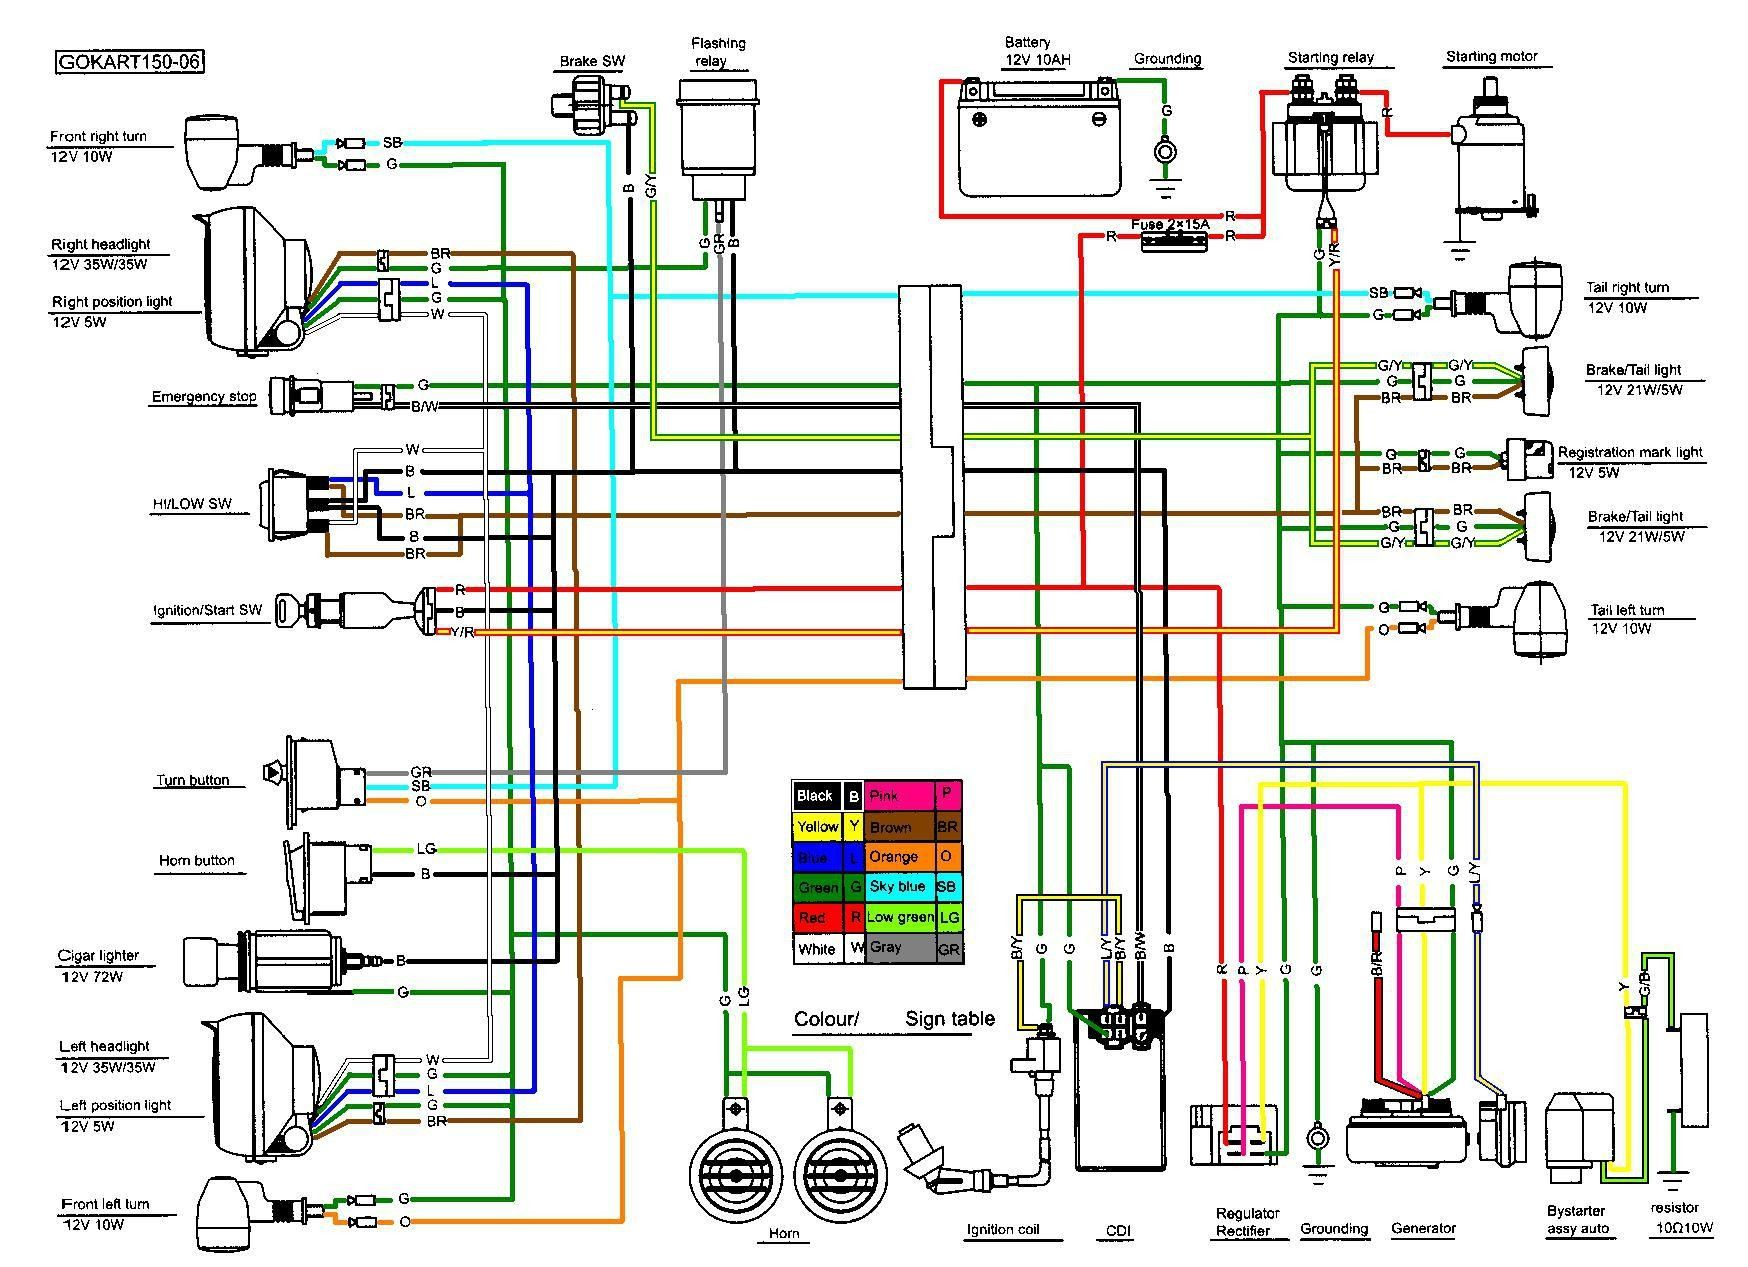 Gy6 Wiring Diagram Schematic Download Howhit 150cc With 150cc At Chinese Scooters Electrical Wiring Diagram 150cc